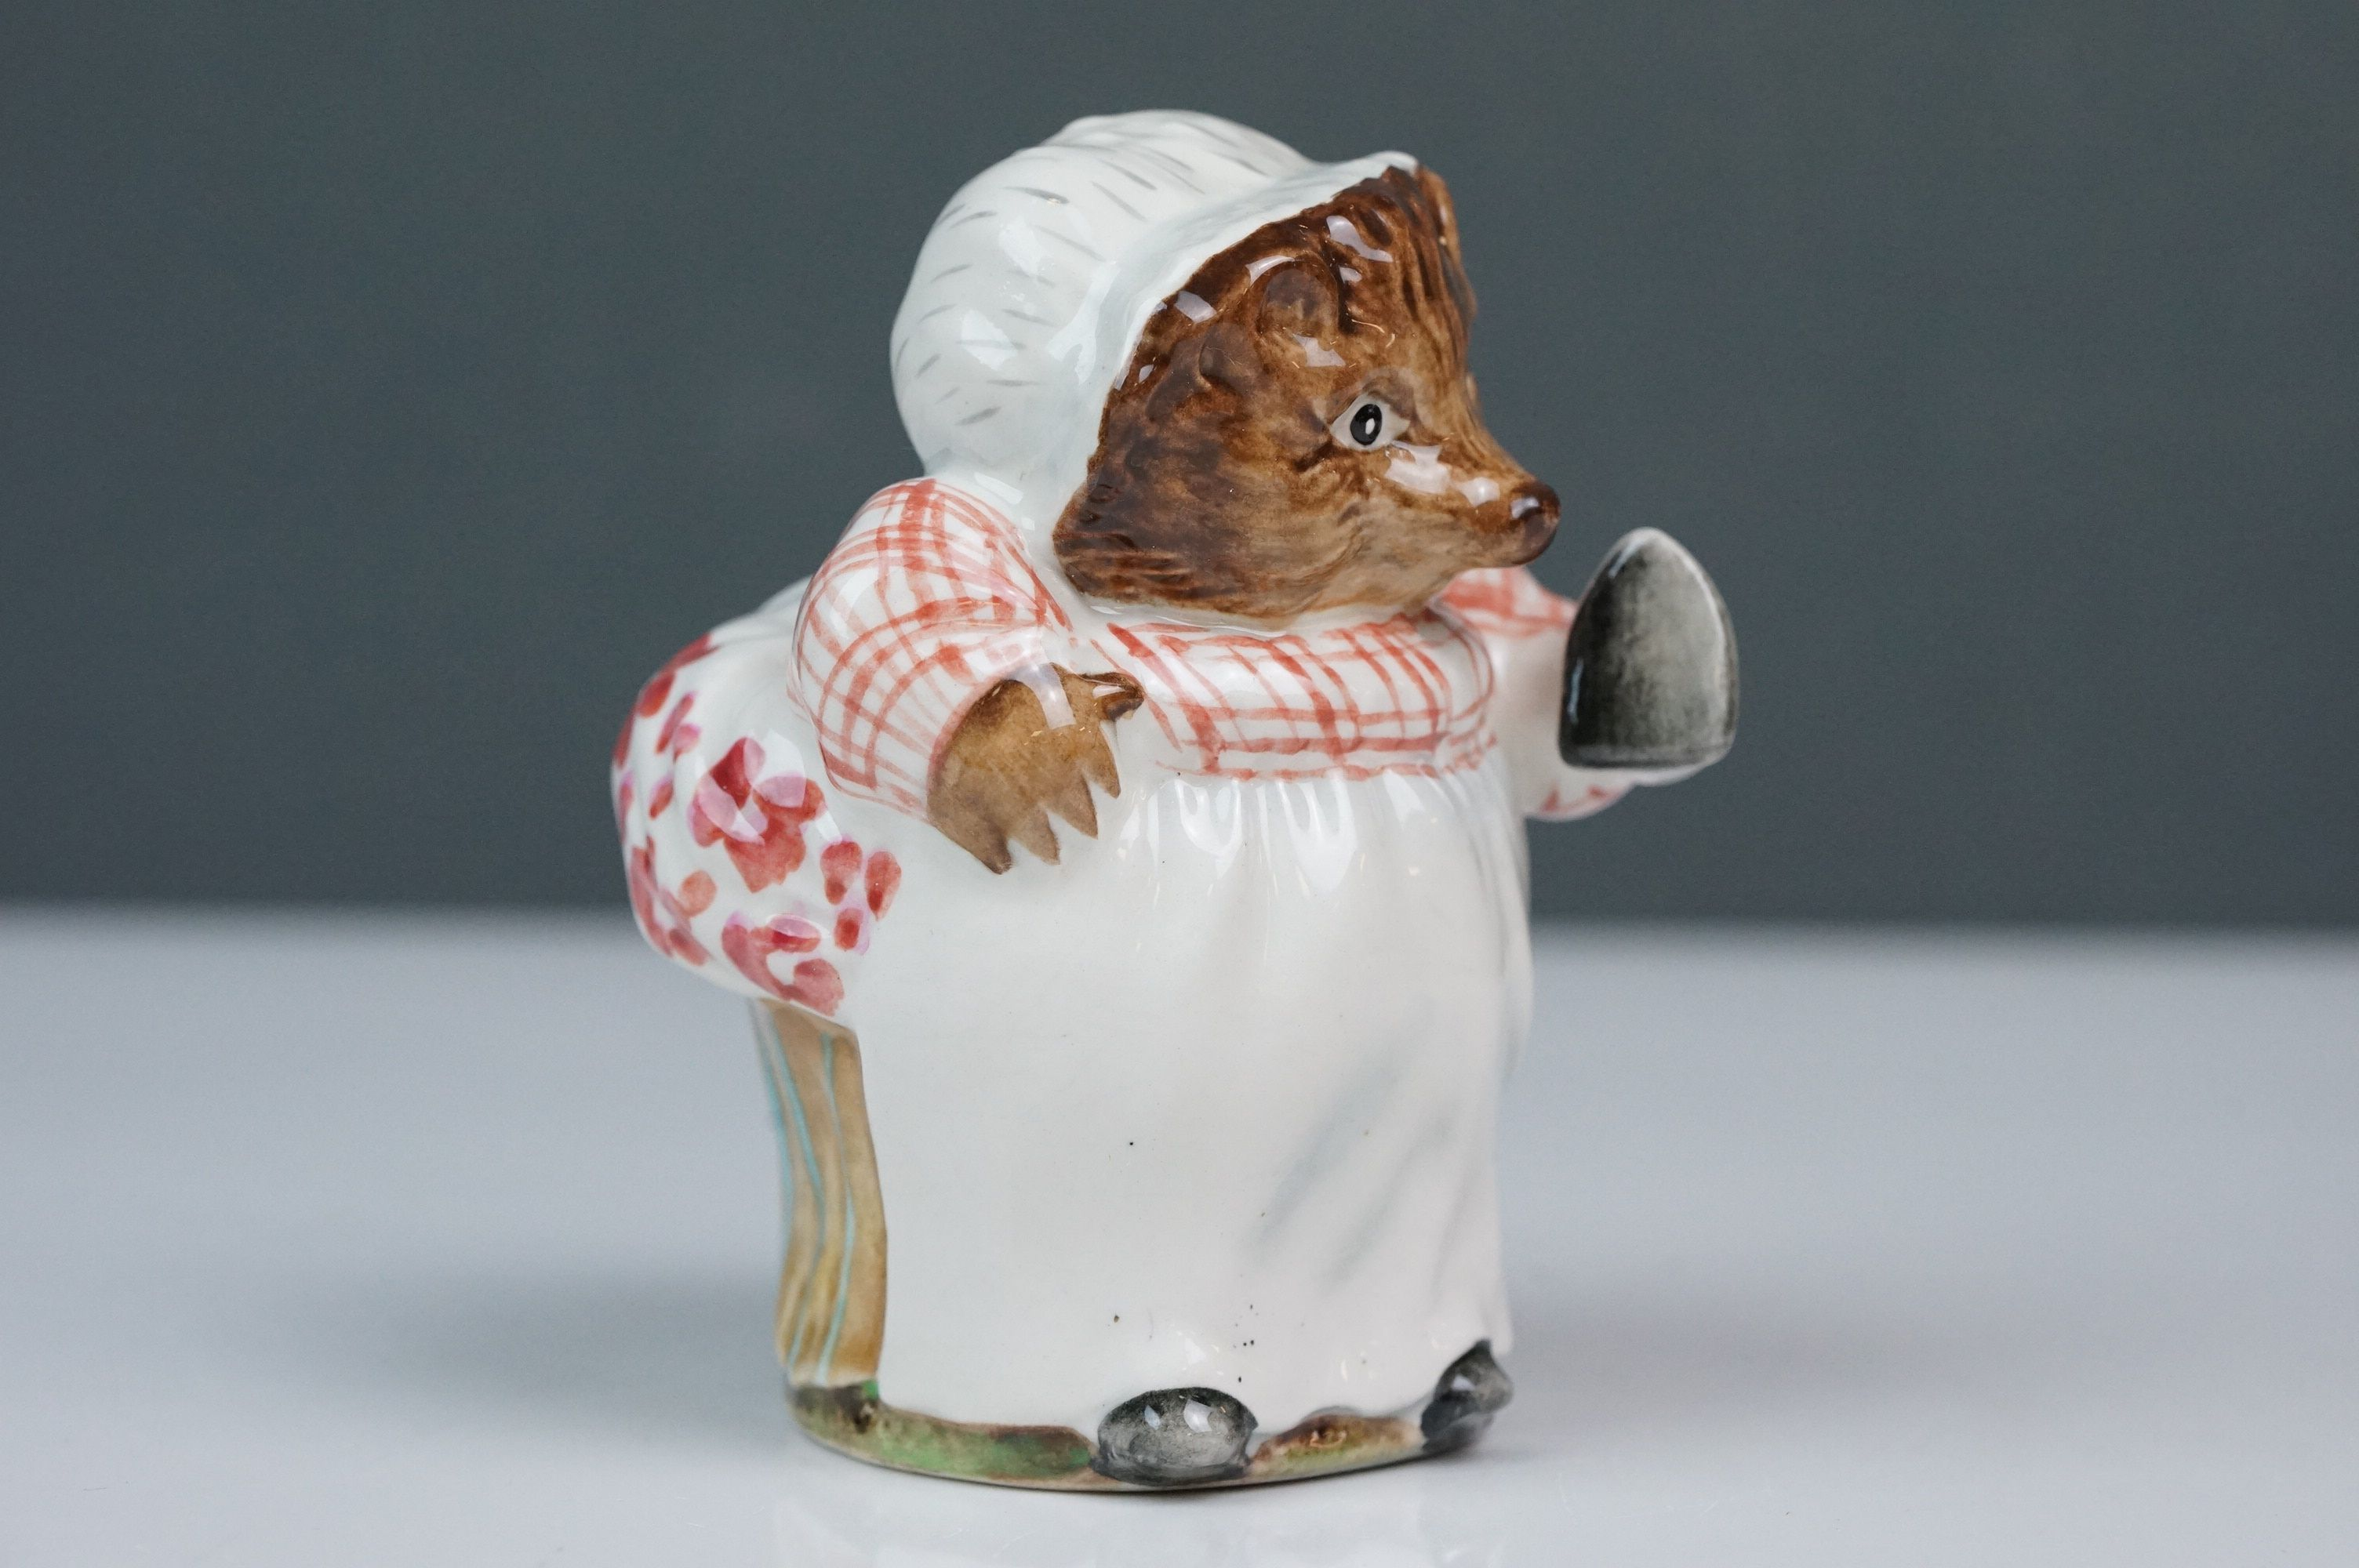 Beswick Beatrix Potter's Mrs Tiggy-Winkle, first version, first variation, gloss finish, BP 1B No. - Image 2 of 5